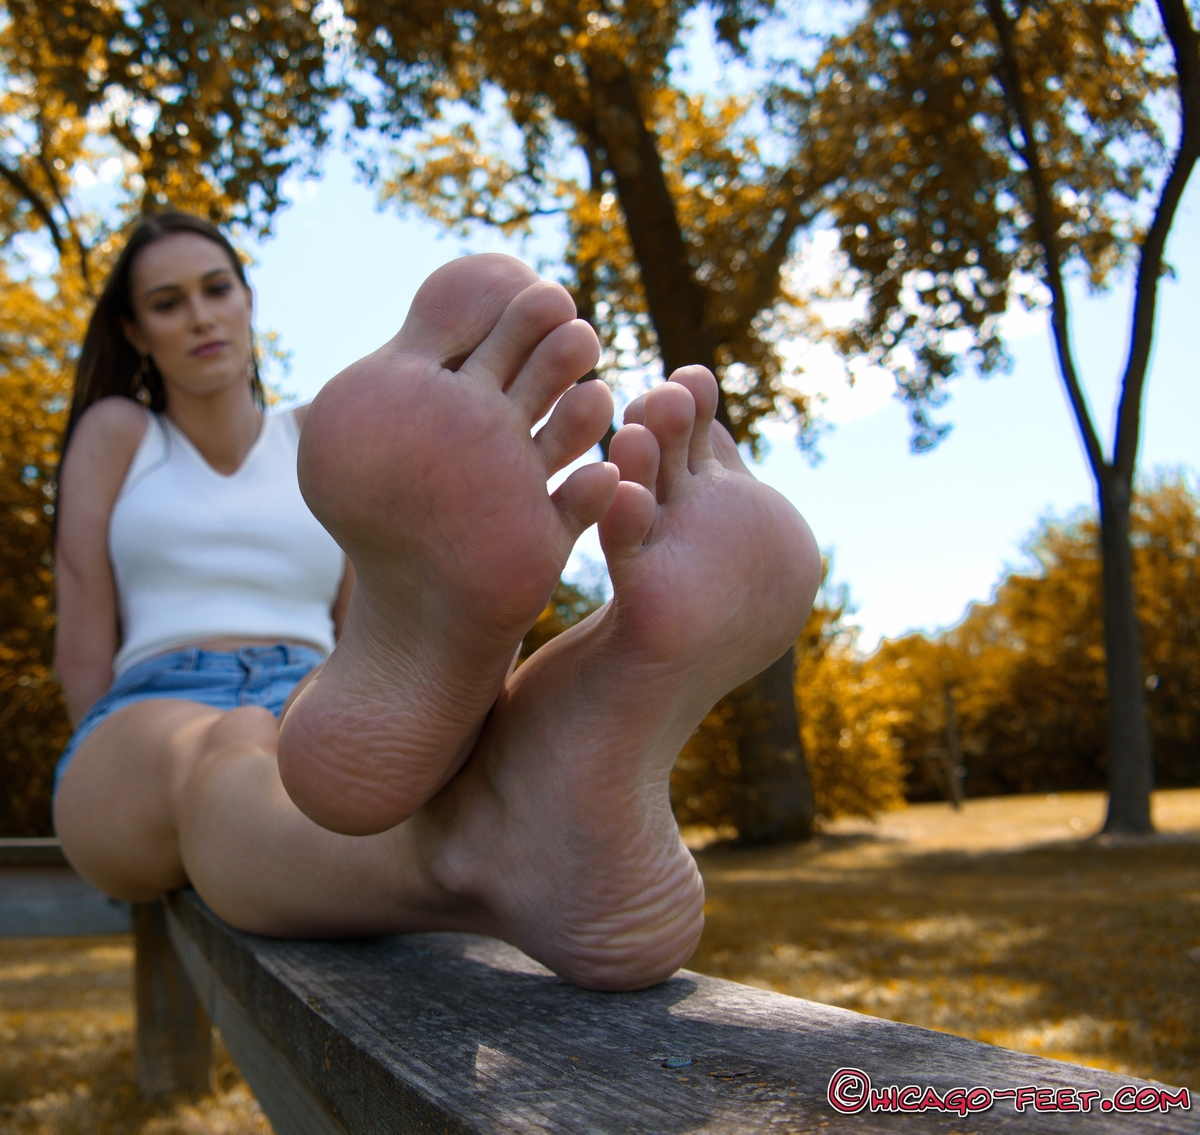 a girl named Ruby showing her feet